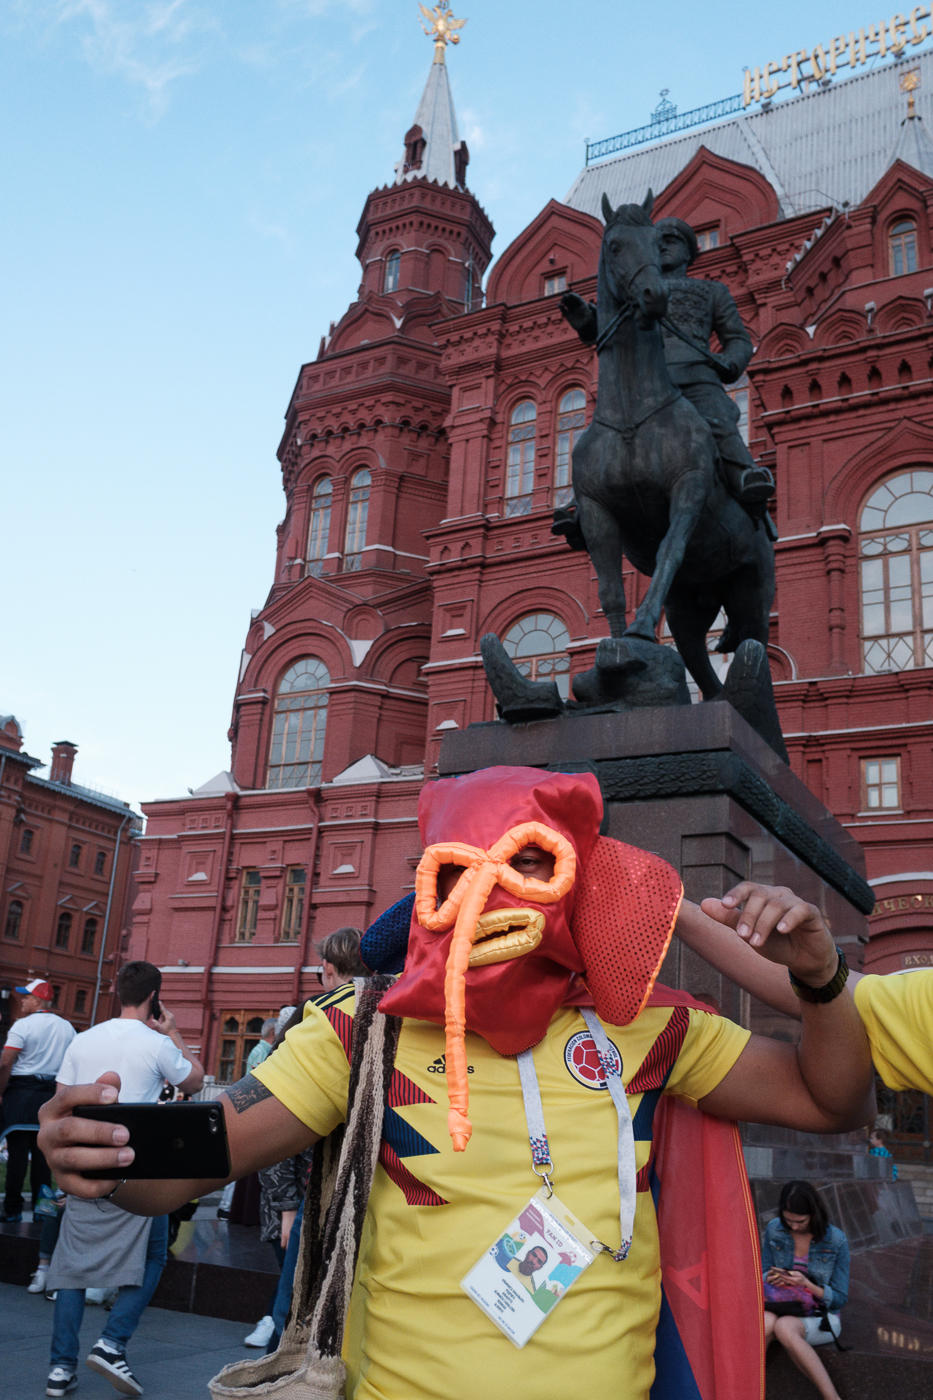 2018 Fifa World Cup Russia Photo Streetsnaps Moscow Manezhnaya square Nikolskaya street football soccer sports travel Mexico Argentina  England Croatia Egypt Nigeria Spain Portugal France Iceland Sweden Germany Serbia